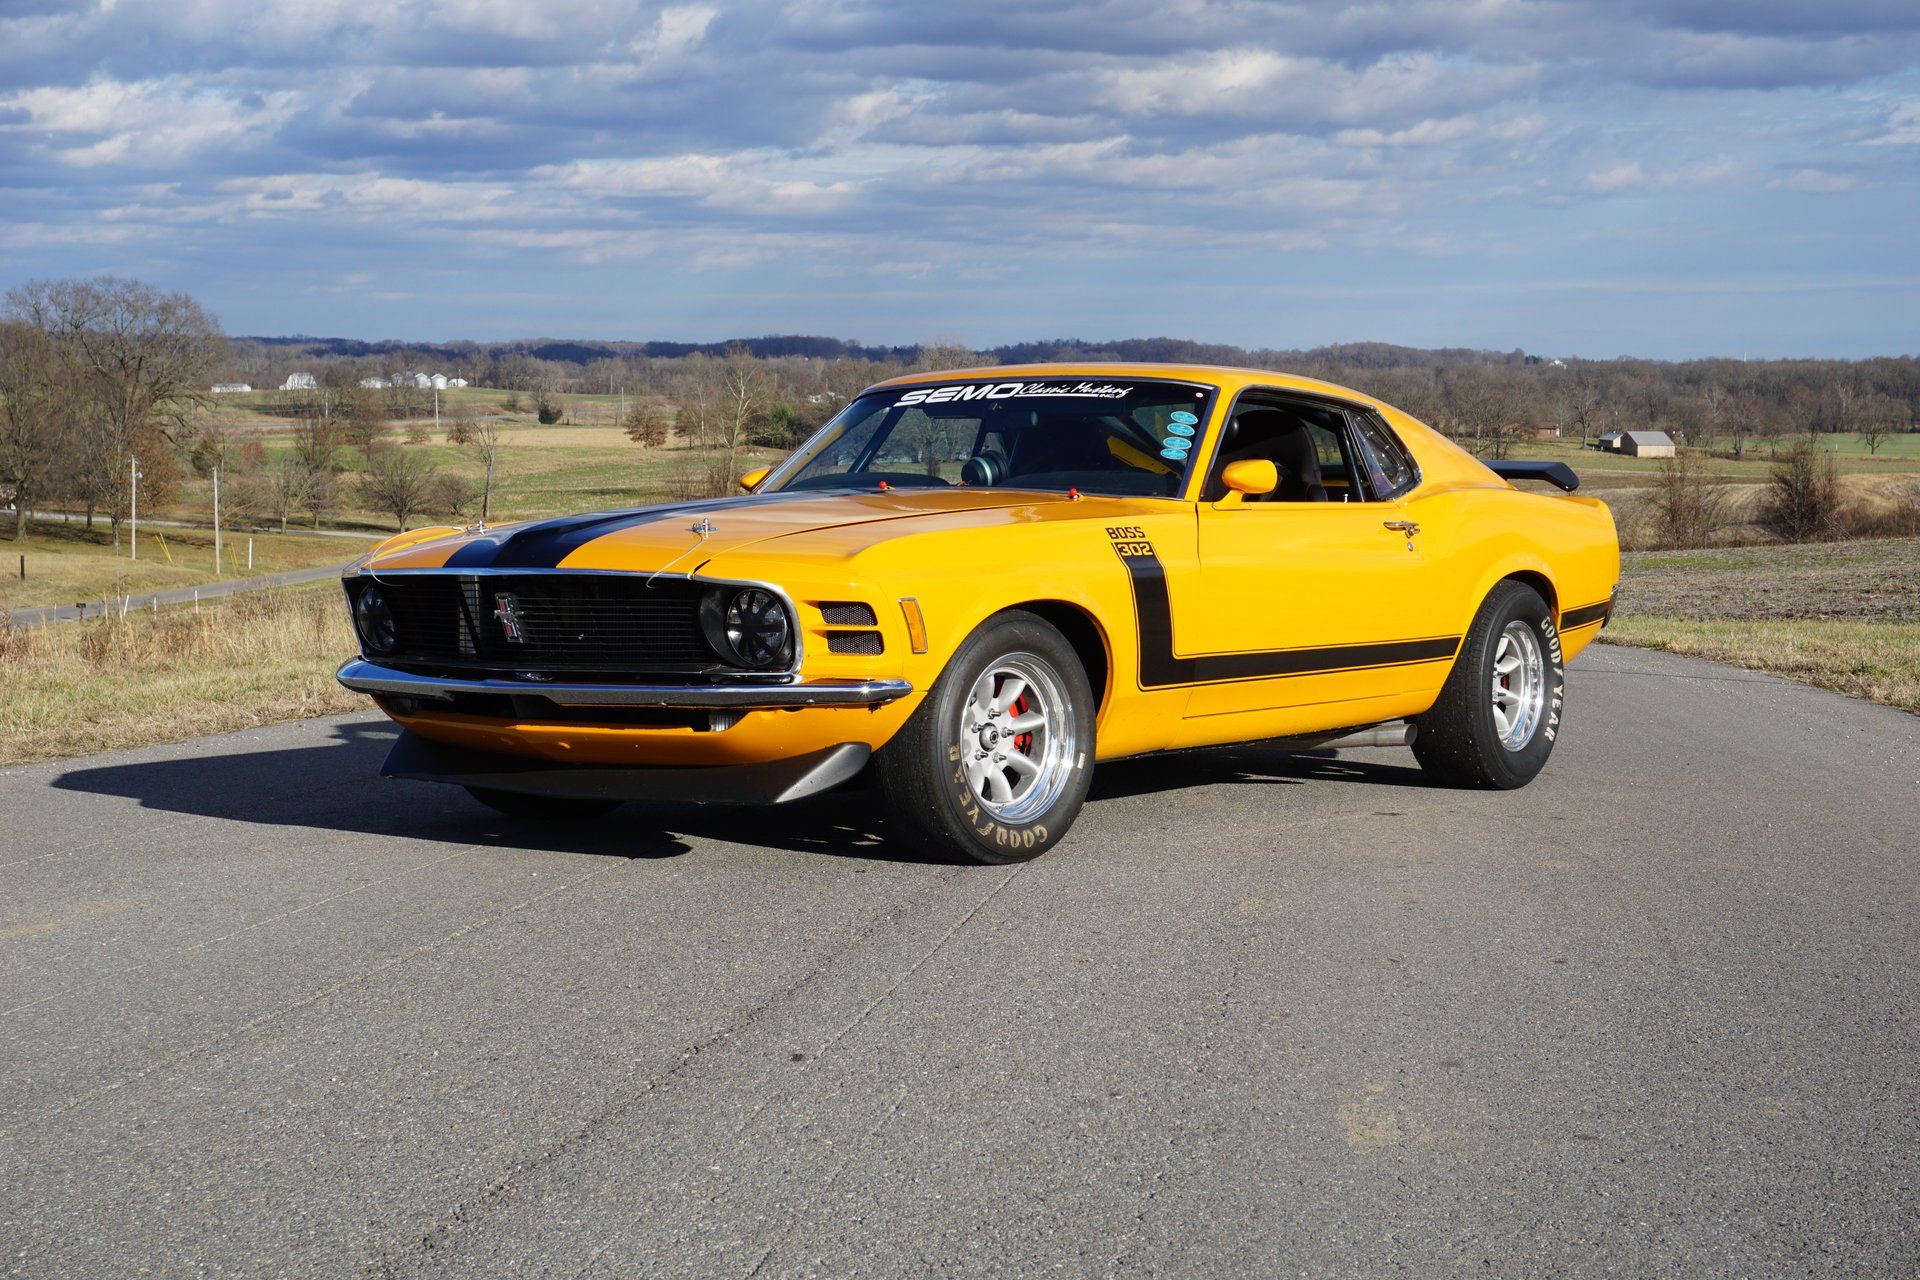 1970 ford mustang boss 302 trans am replica